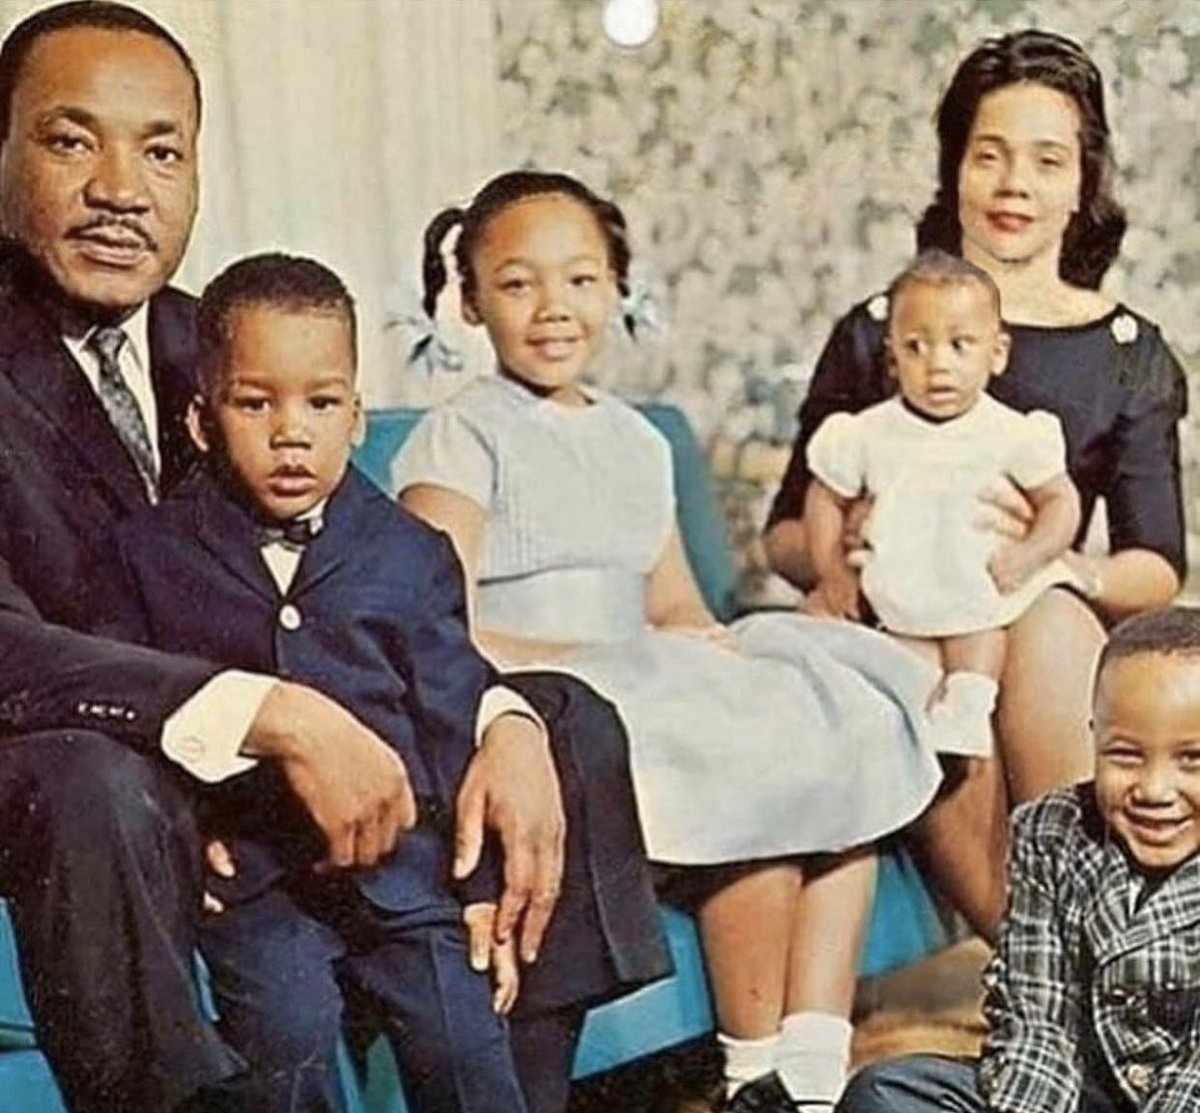 He didn't die of natural causes.   My father was murdered for working to end racism, war and poverty and for speaking truth to White people in power who didn't want to share it.   The evils he opposed then still exist now.   #COVID19 is revealing just how much.